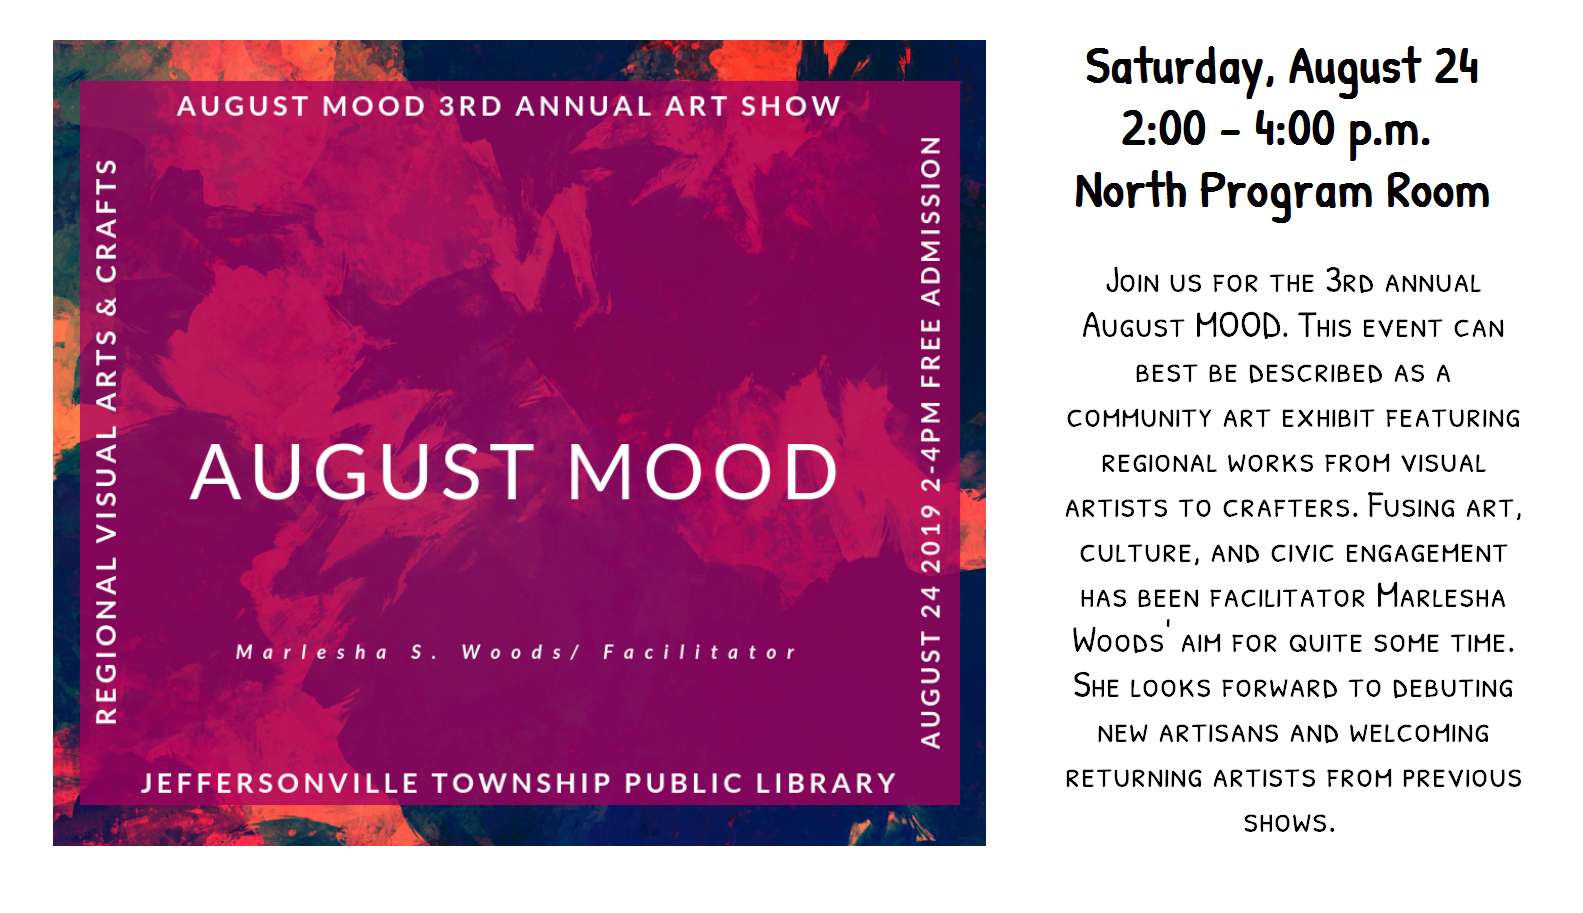 Flyer for the August MOOD art show on August 24th, 2019